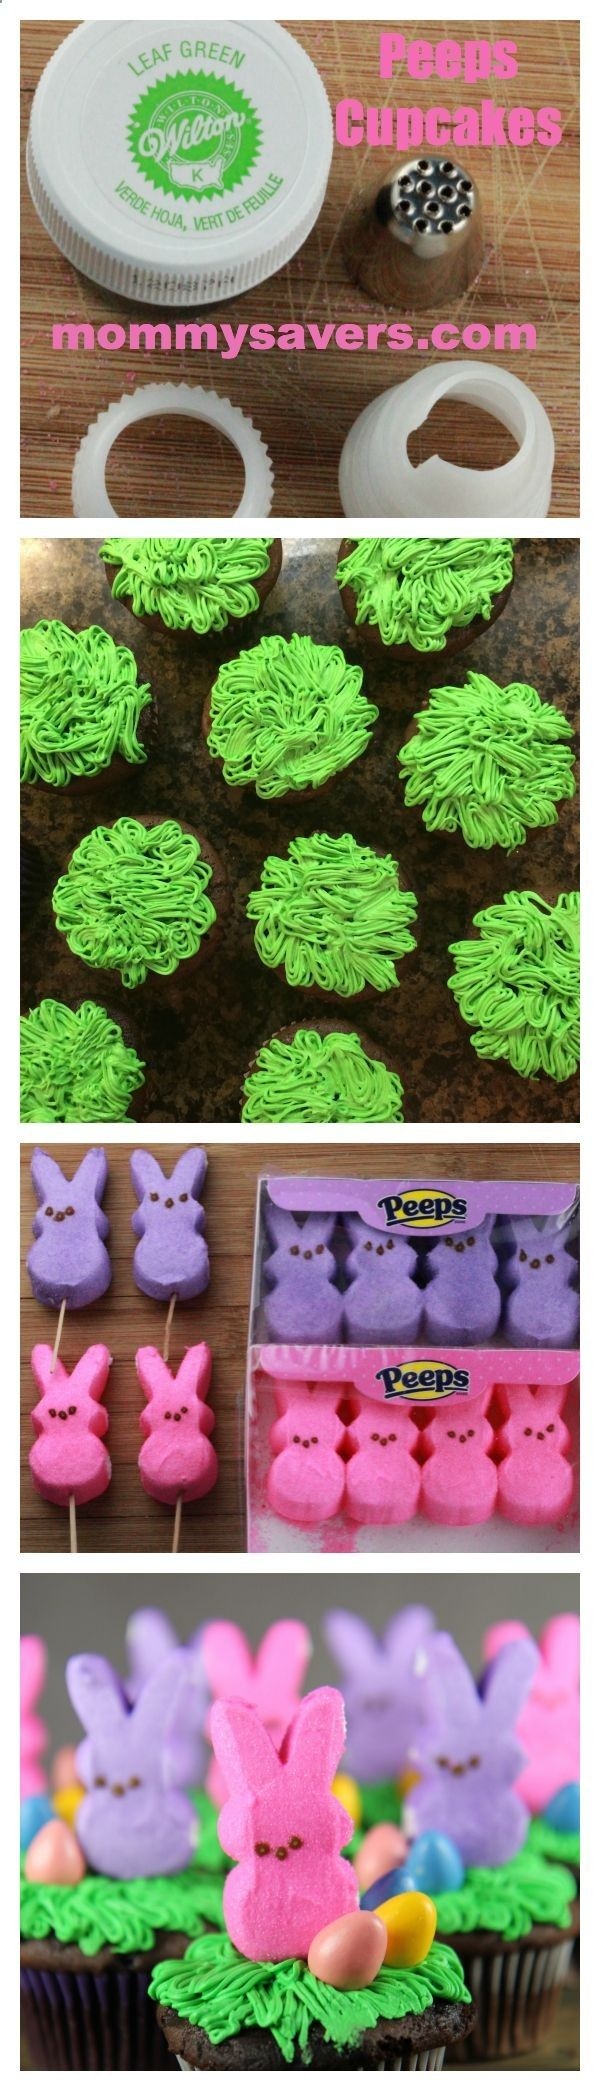 (Photo - from another catalog like Pinterest) Easter Peeps Cupcakes How to get the bunnies to stand up without falling over